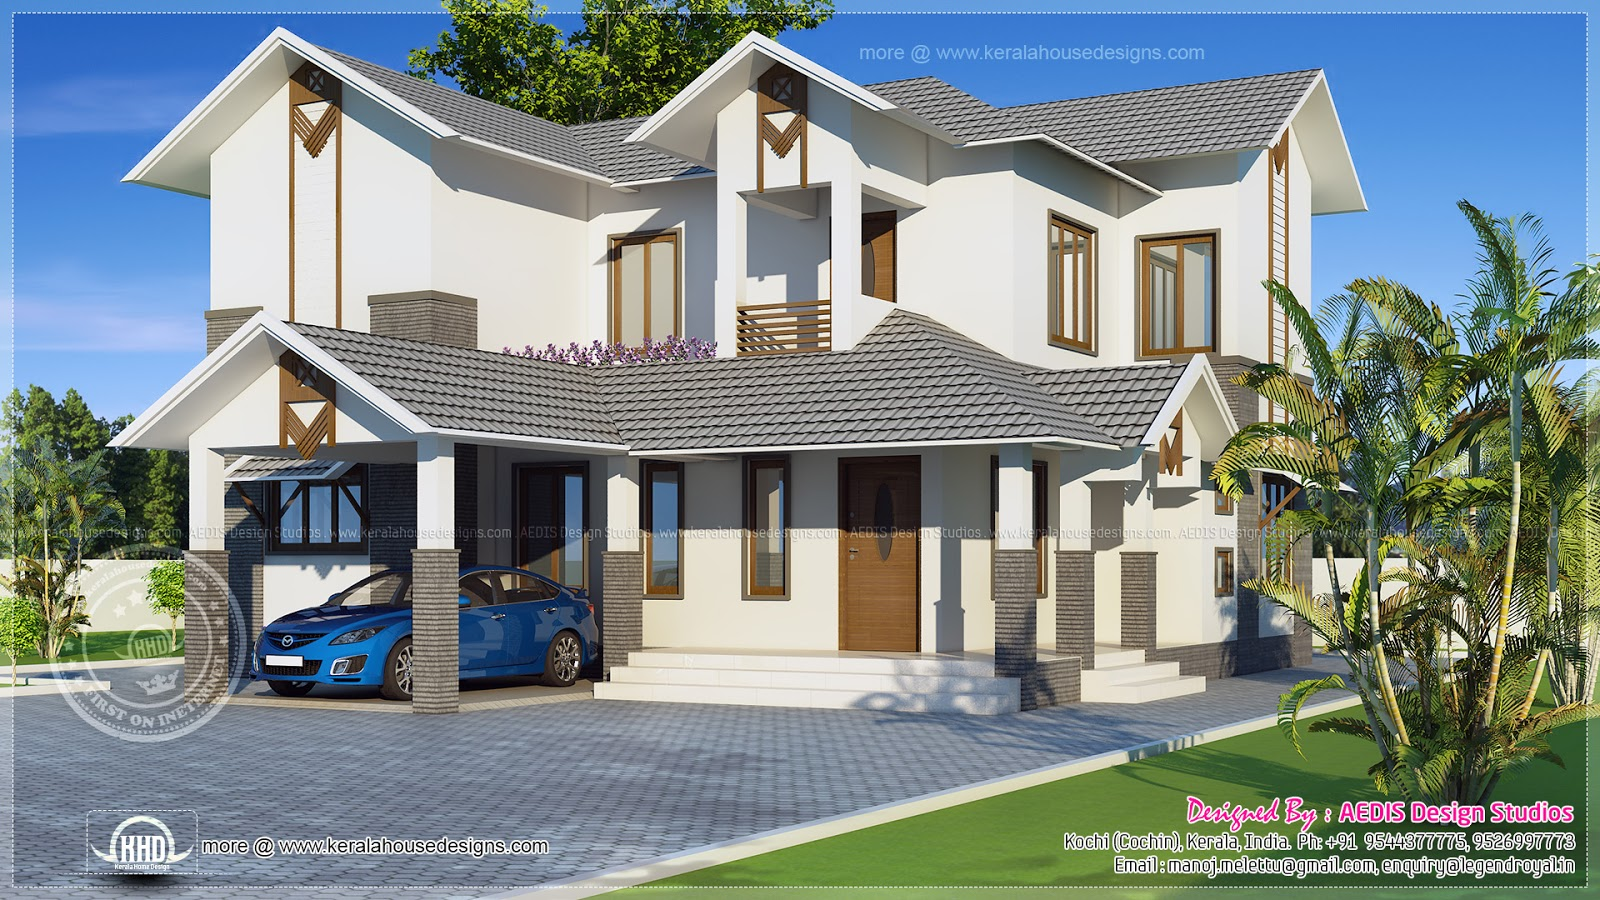 Modern sloping roof home exterior design kerala home for Roof exterior design